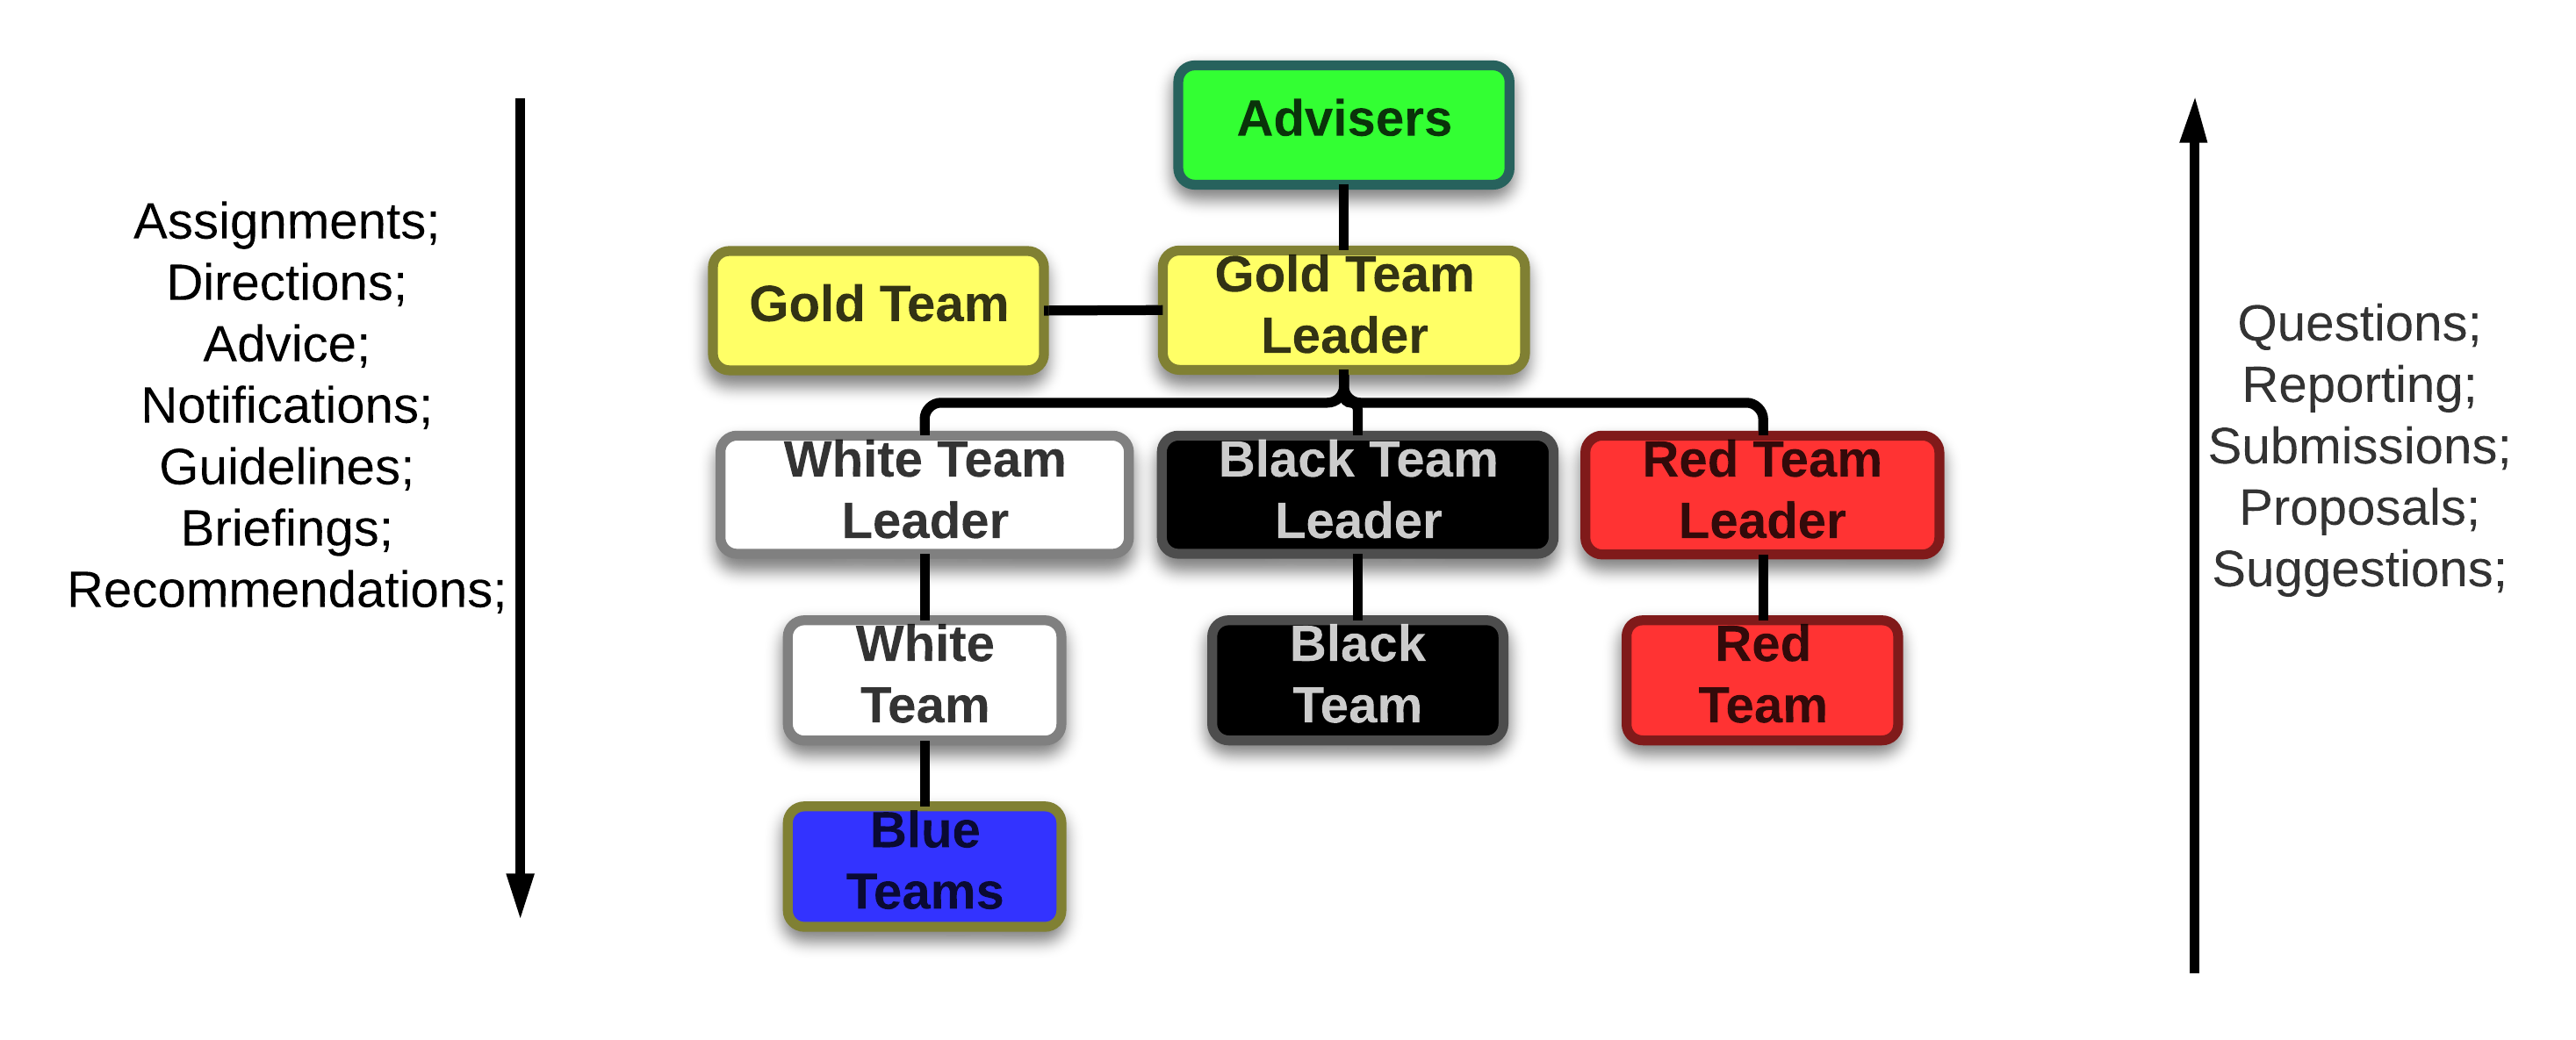 guides:lockdown_competition_organizational_chart.png